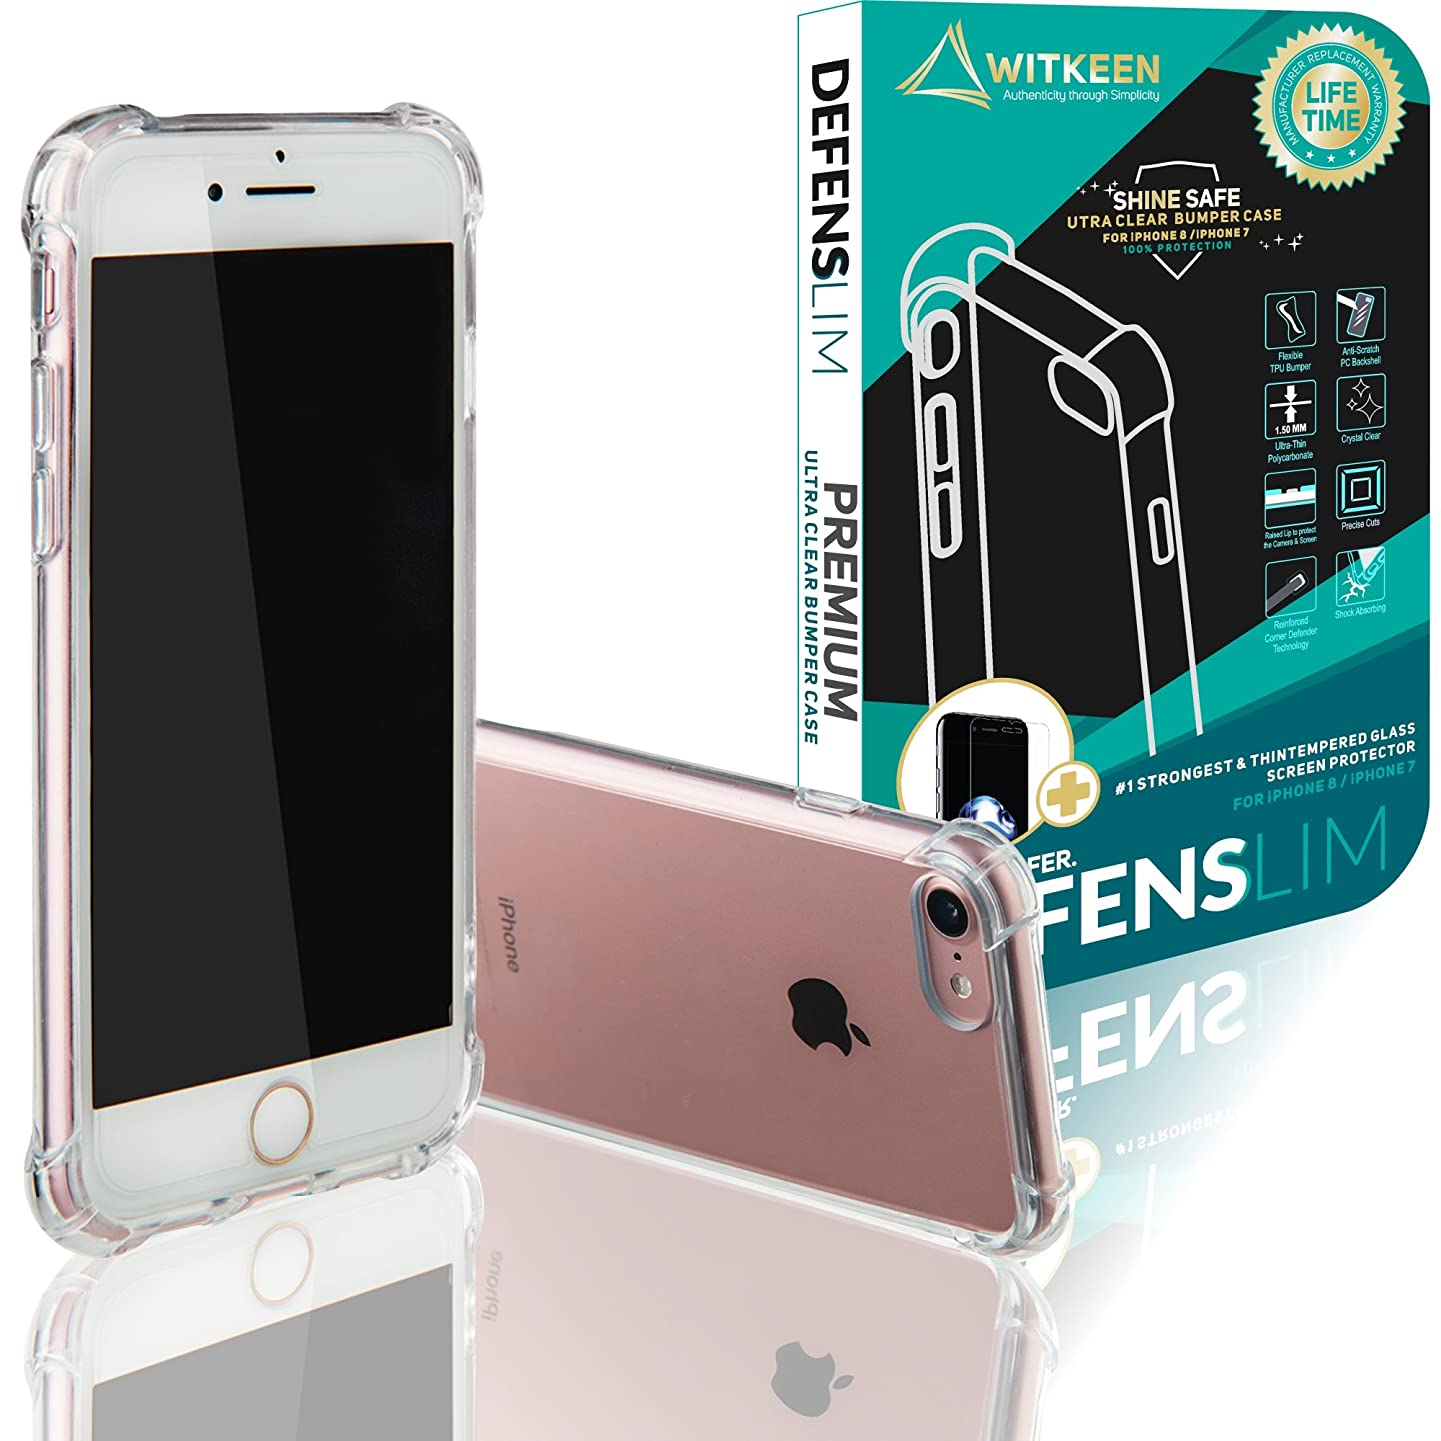 2018 Defenslim Ultra Clear Case iPhone 8 / iPhone 7, by Witkeen Shockproof Bumper Cases with Corner Defender Technology for Apple iPhone 8 / iPhone 7 Transparent Cover